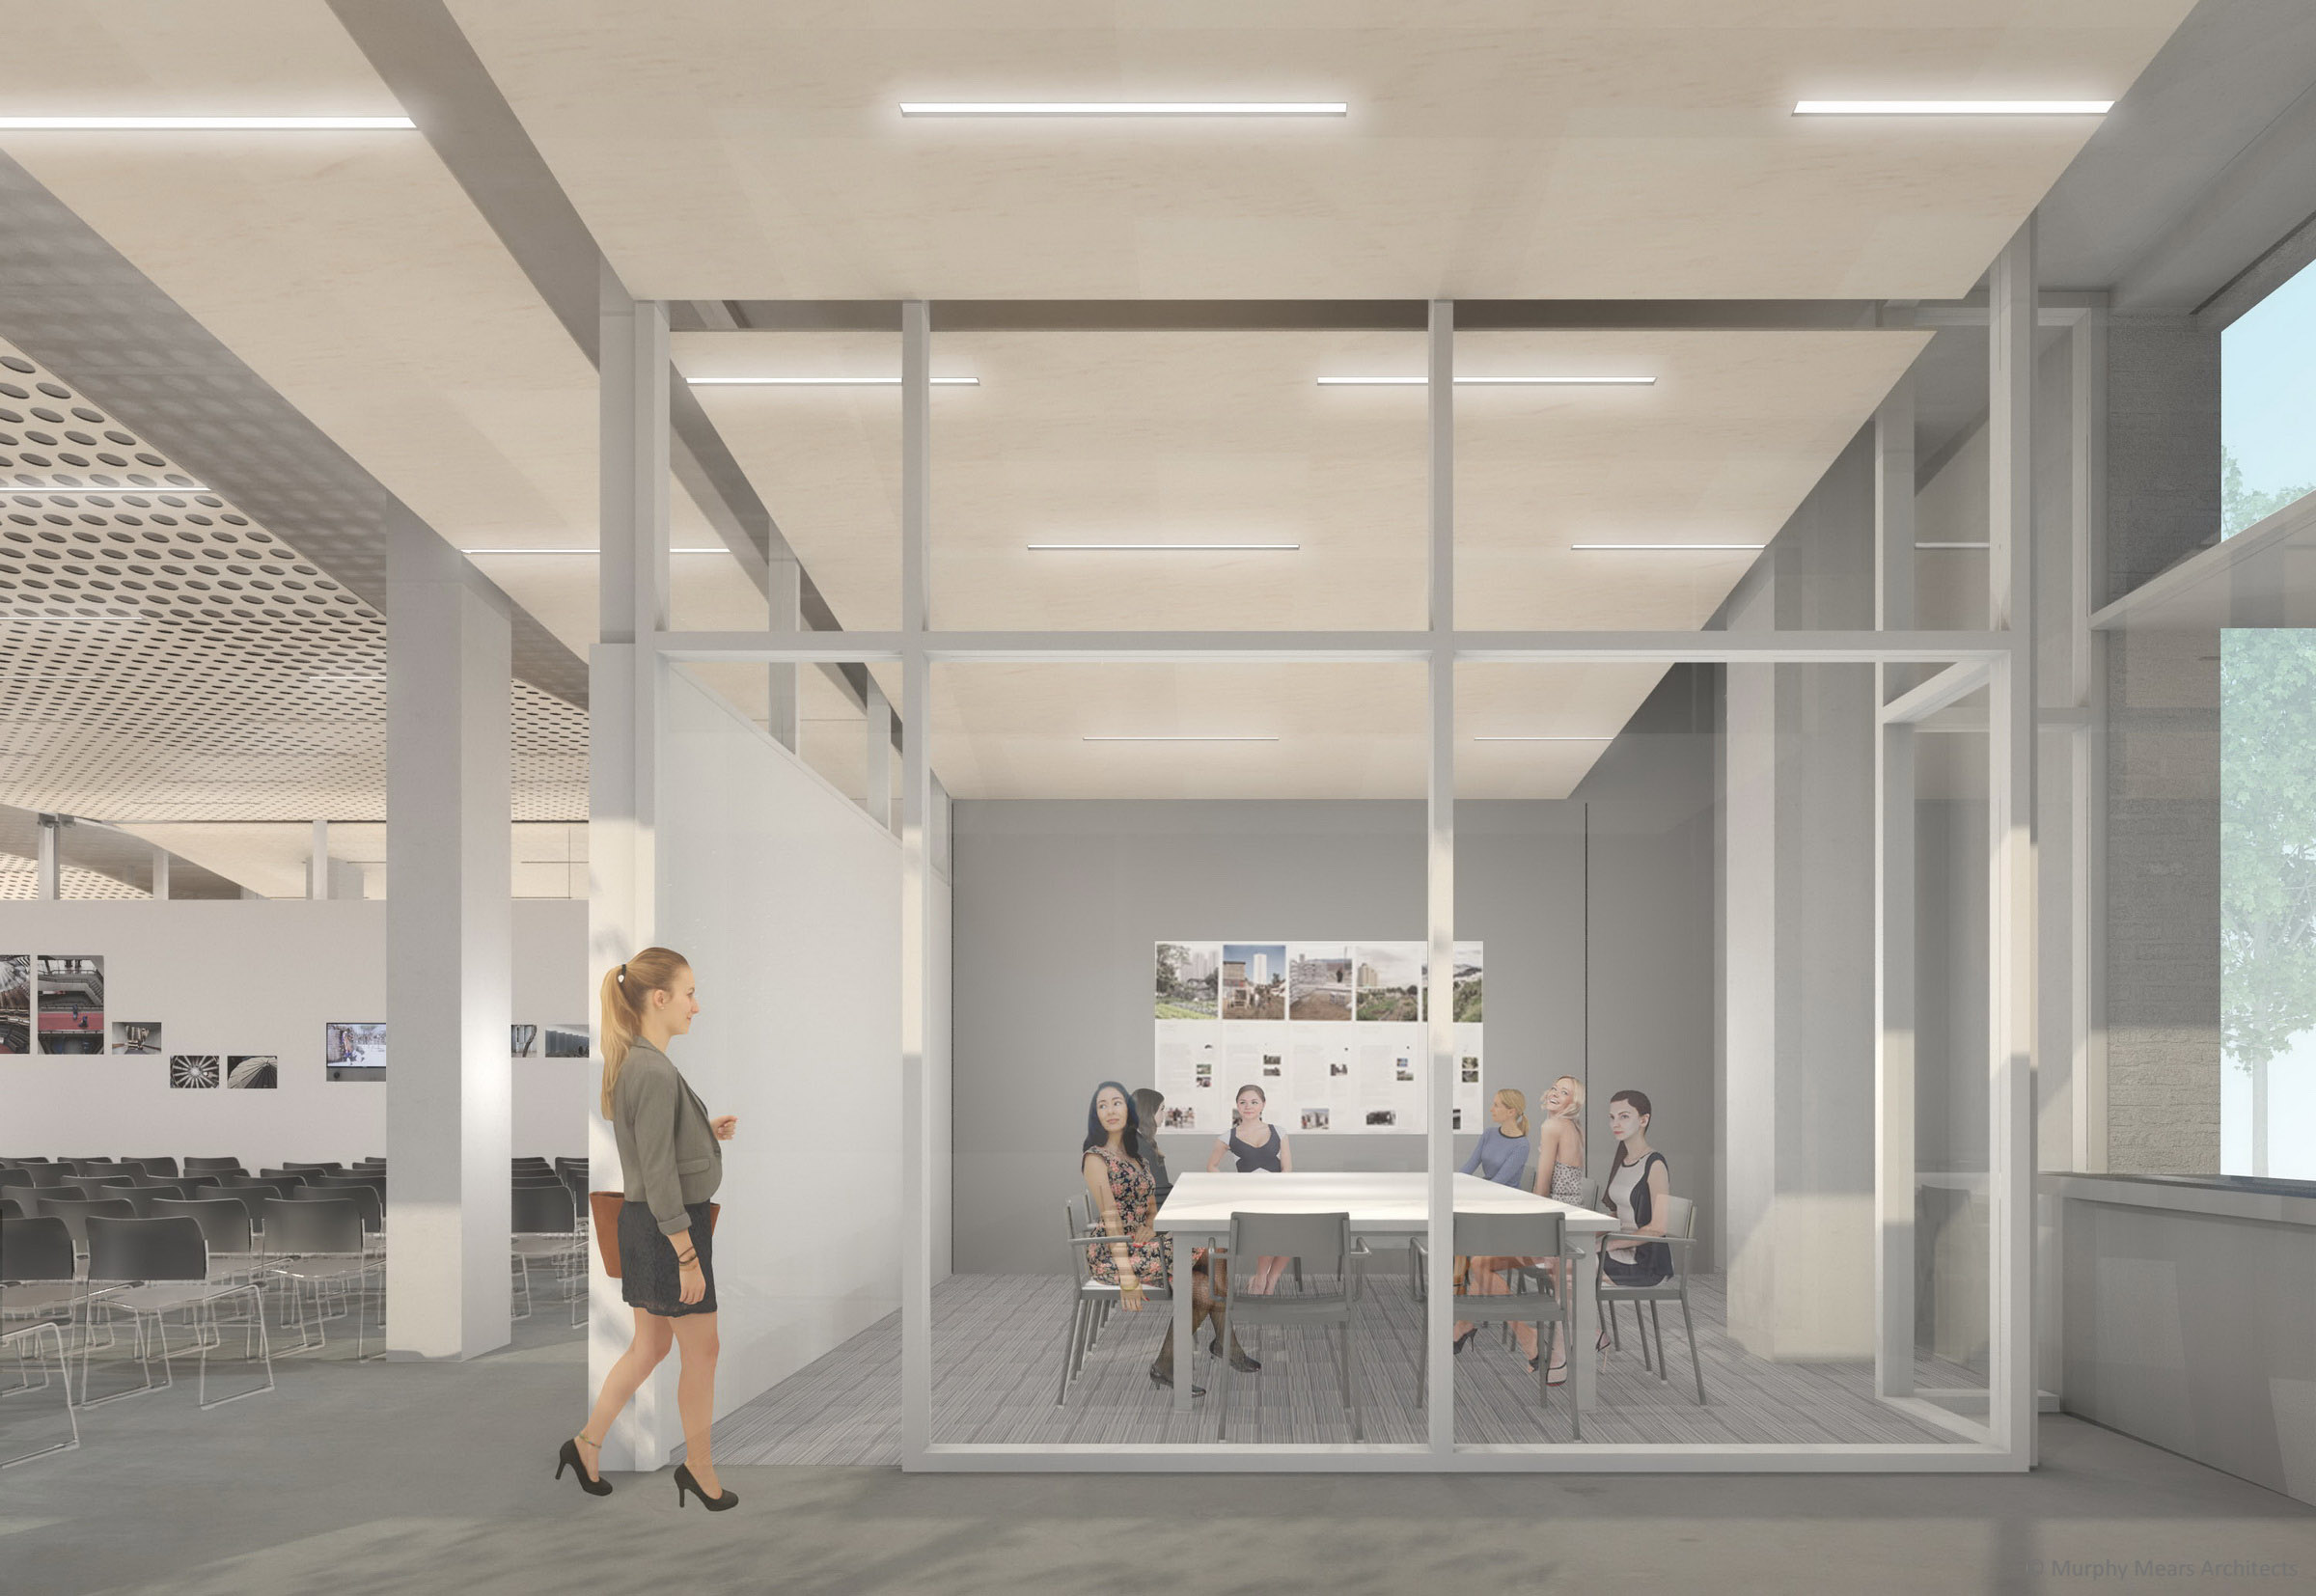 Architecture Center Houston - Competition Rendering - Operable partition closed to form two medium sized conference rooms.